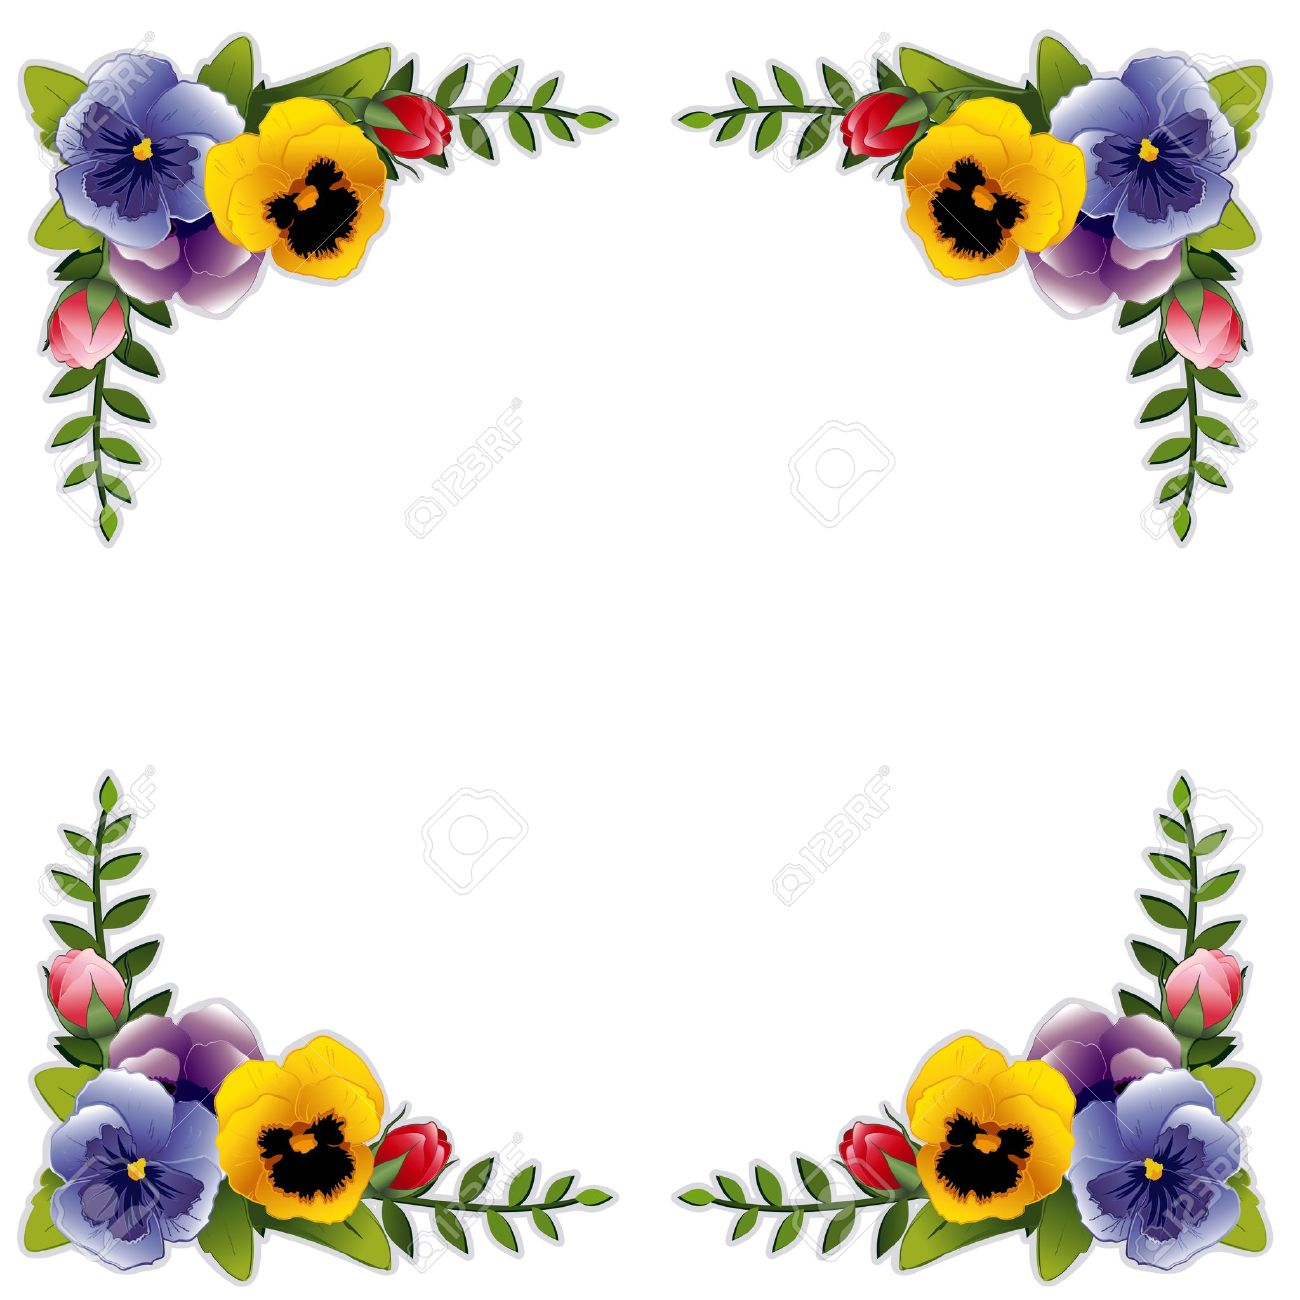 Victorian Flower Frame with Pansies and Roses. Copy space for your text or picture. Traditional for gift tag, card, label or announcement for celebrations, holidays, scrapbooks, albums. Stock Vector - 12392311